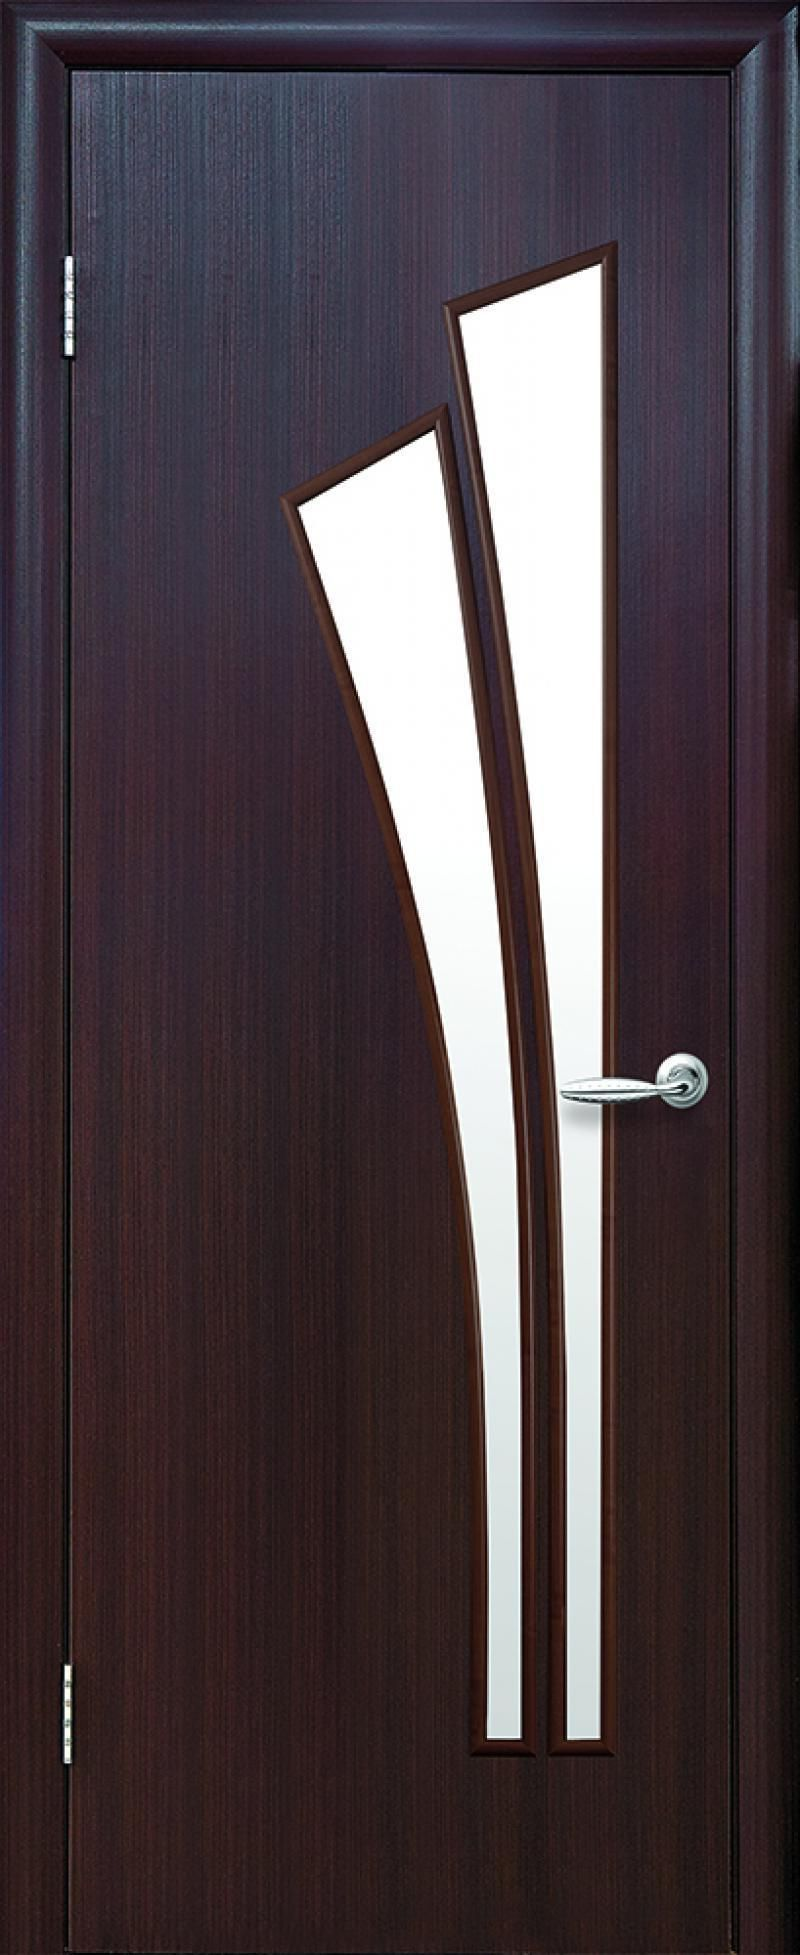 Modern Interior Doors Design awesome interior modern door photos - amazing interior home